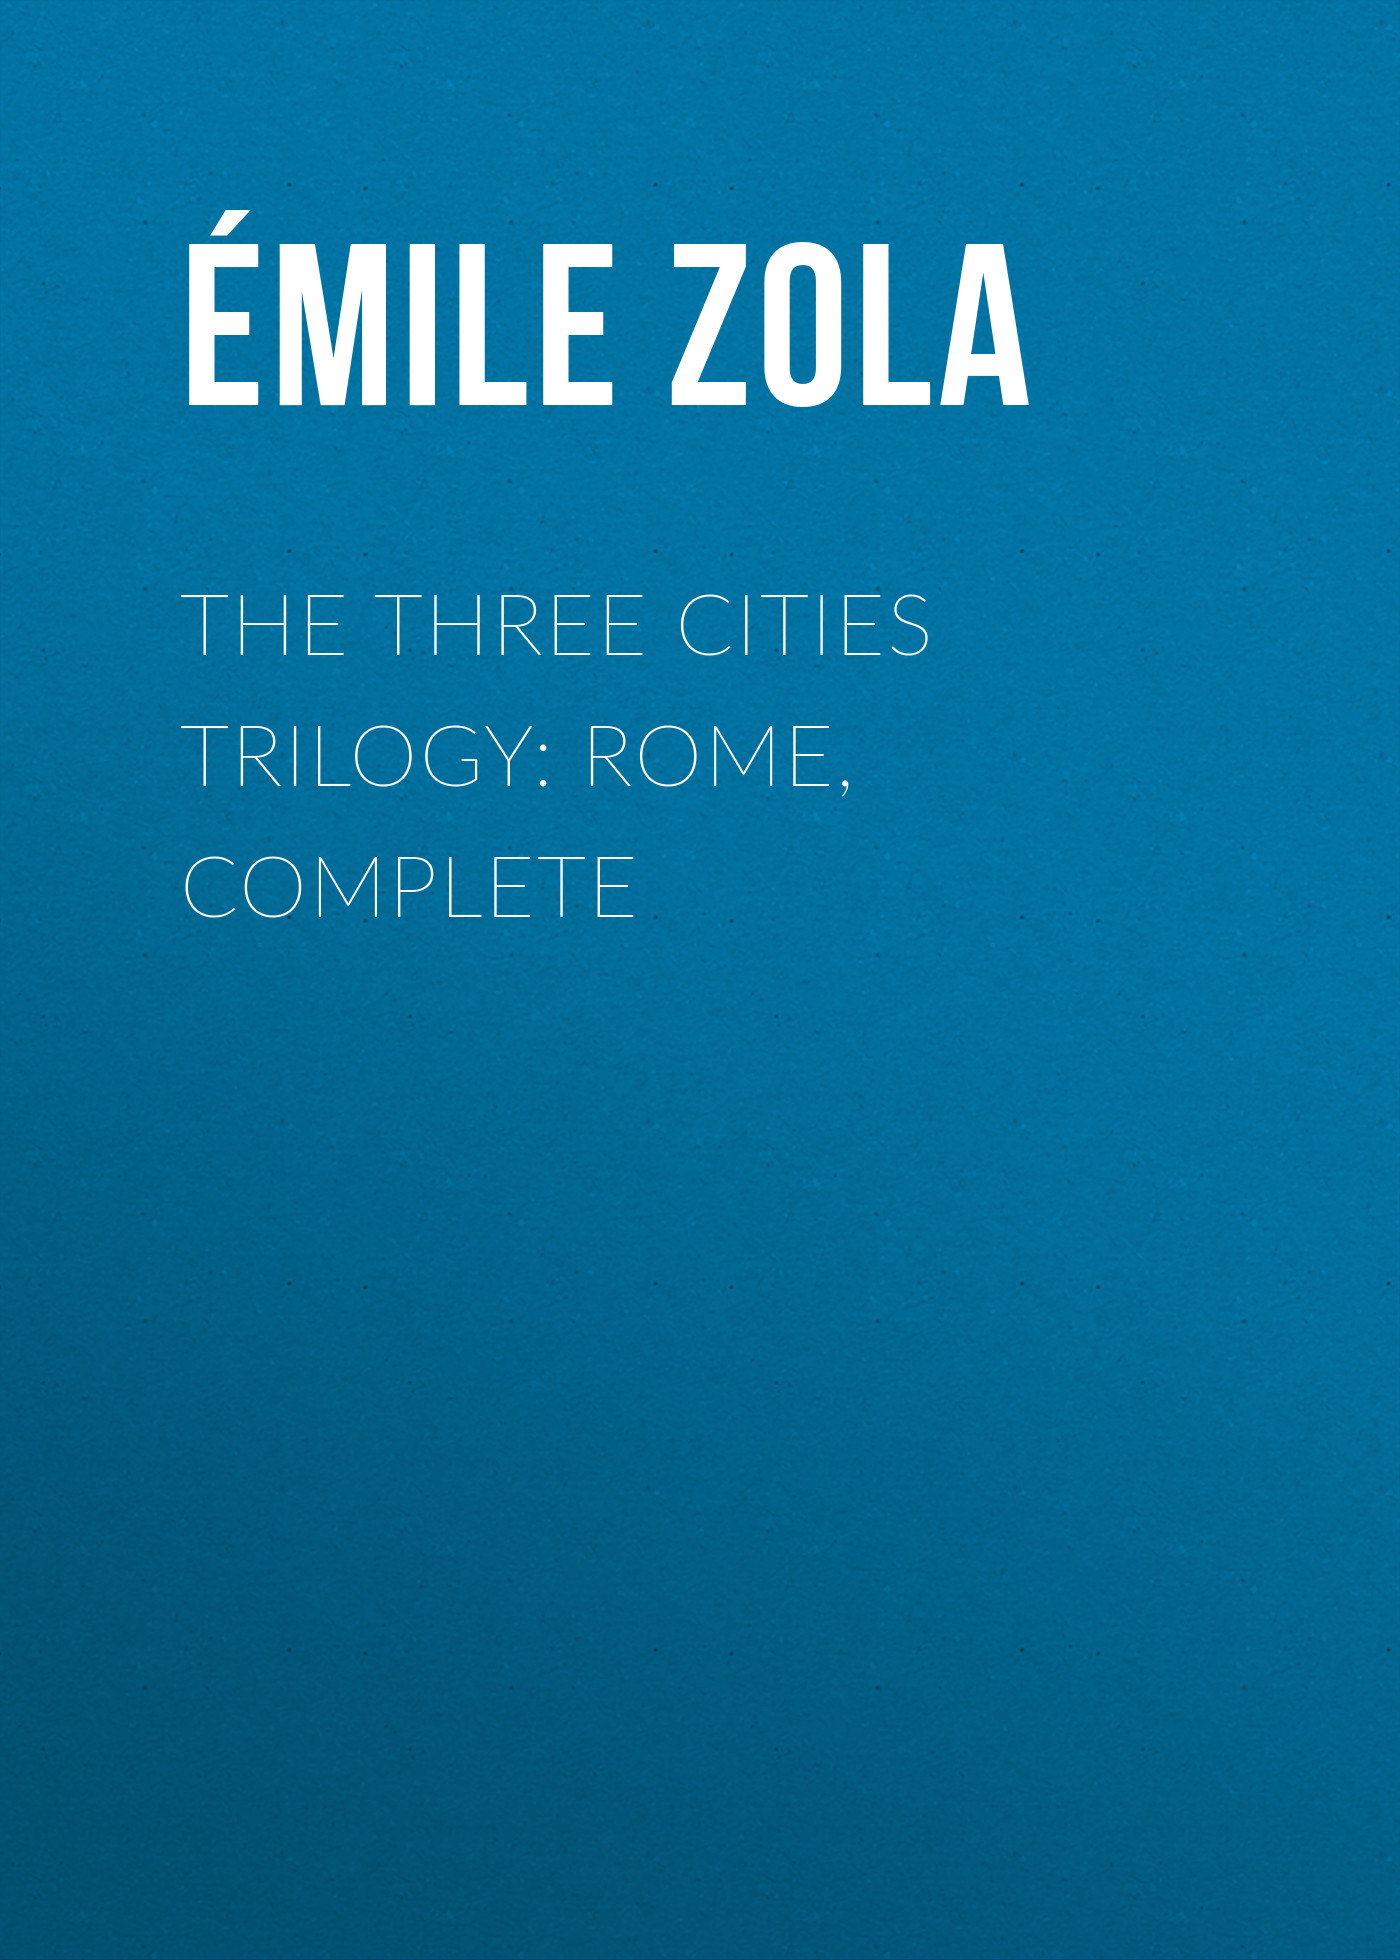 The Three Cities Trilogy: Rome, Complete